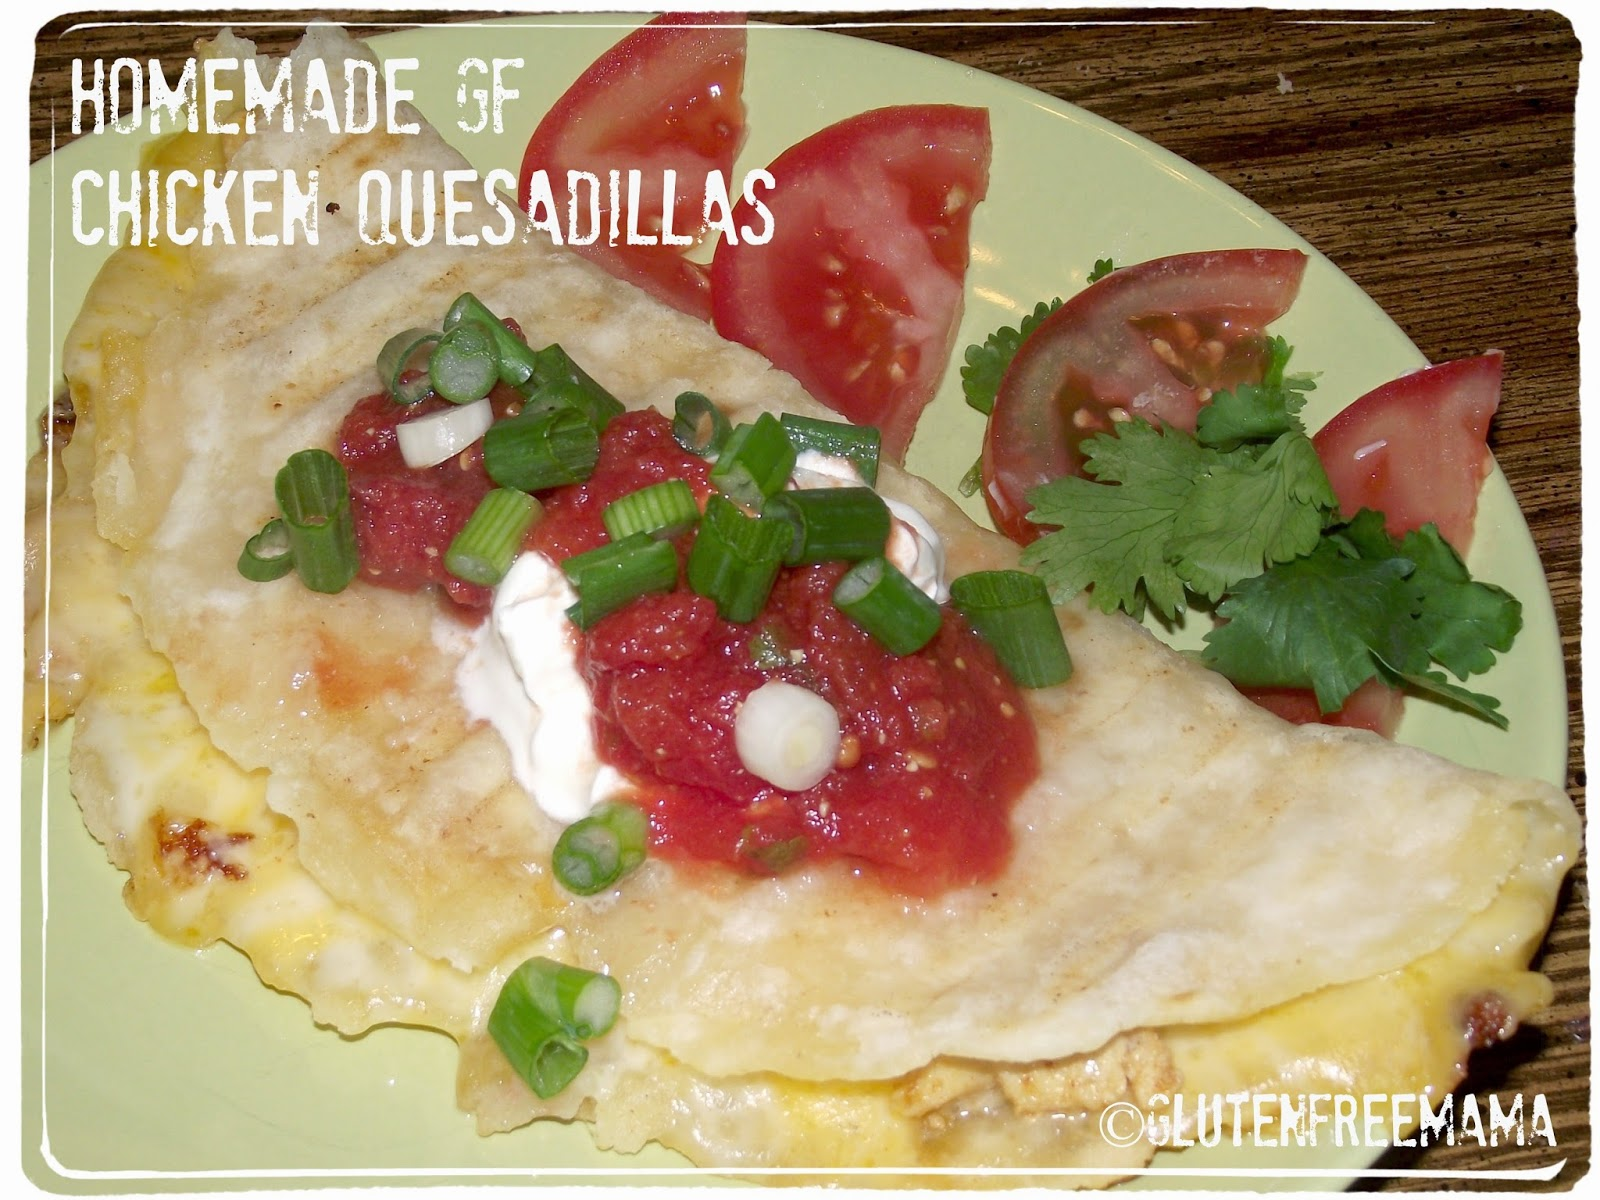 Home-Made Gluten Free Quesadilla's with Home-Made GF Tortillas